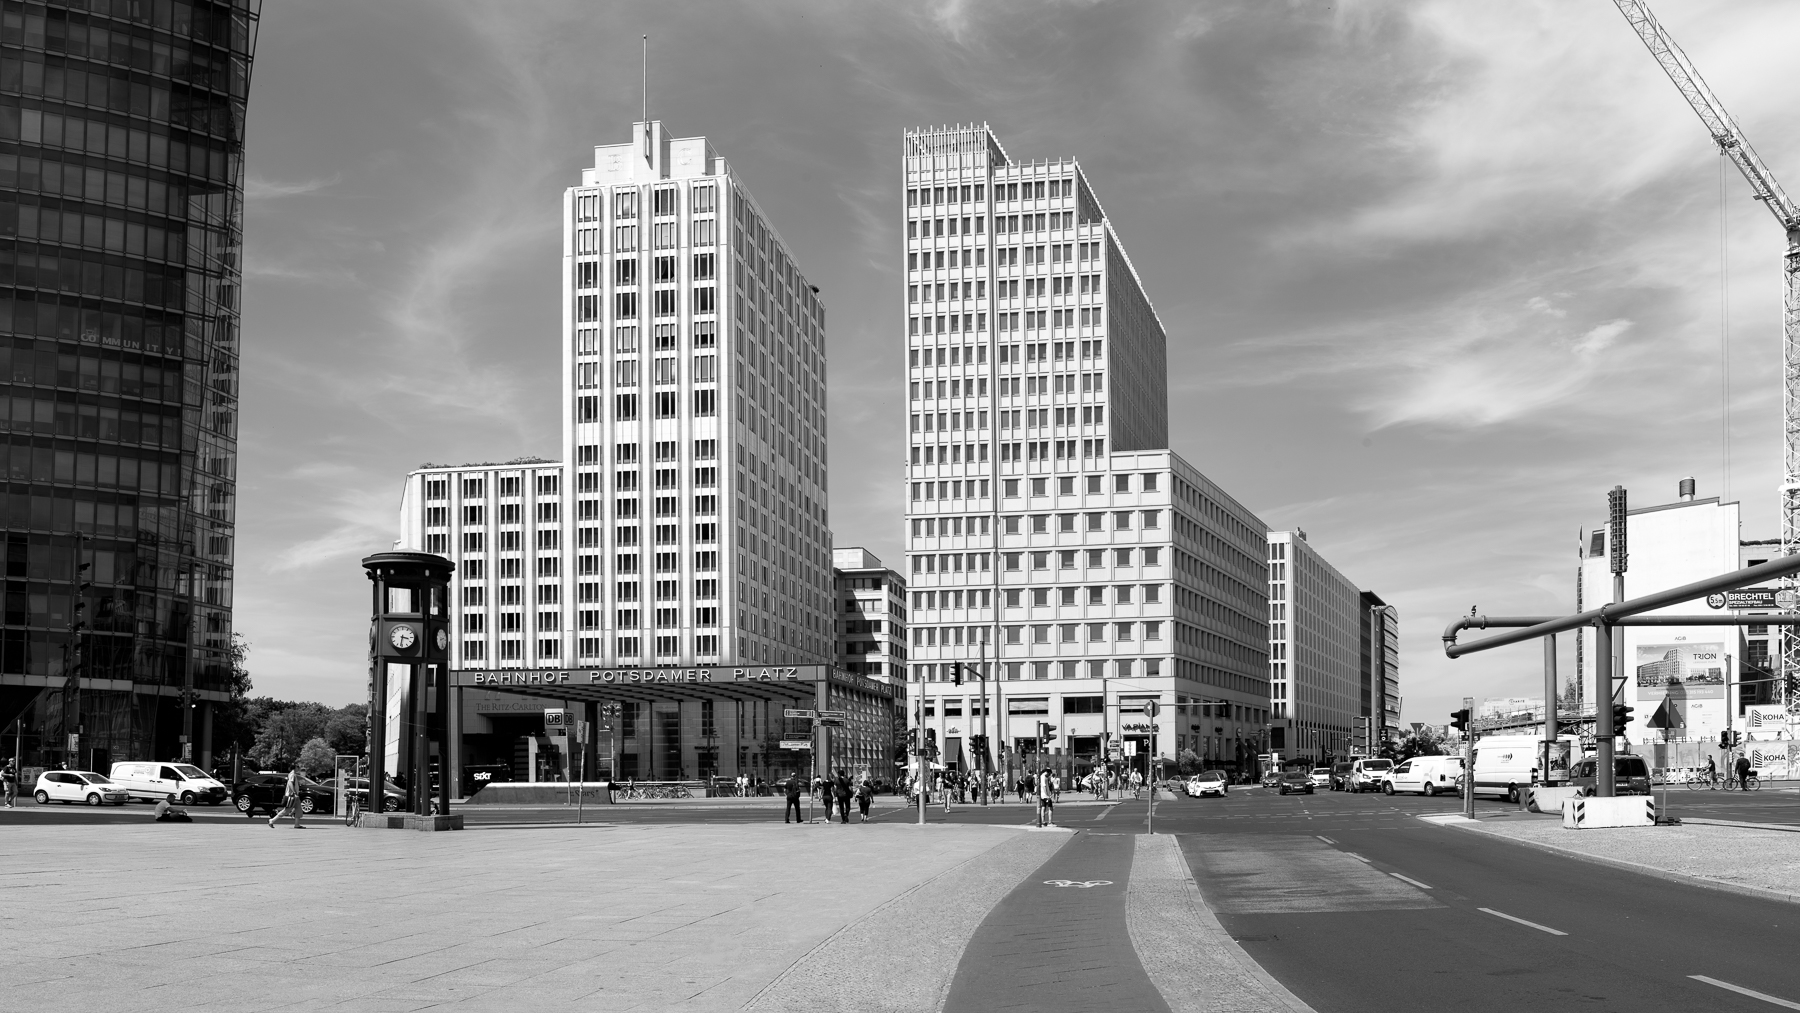 Potsdamer Platz, Berlin. © Mike Best